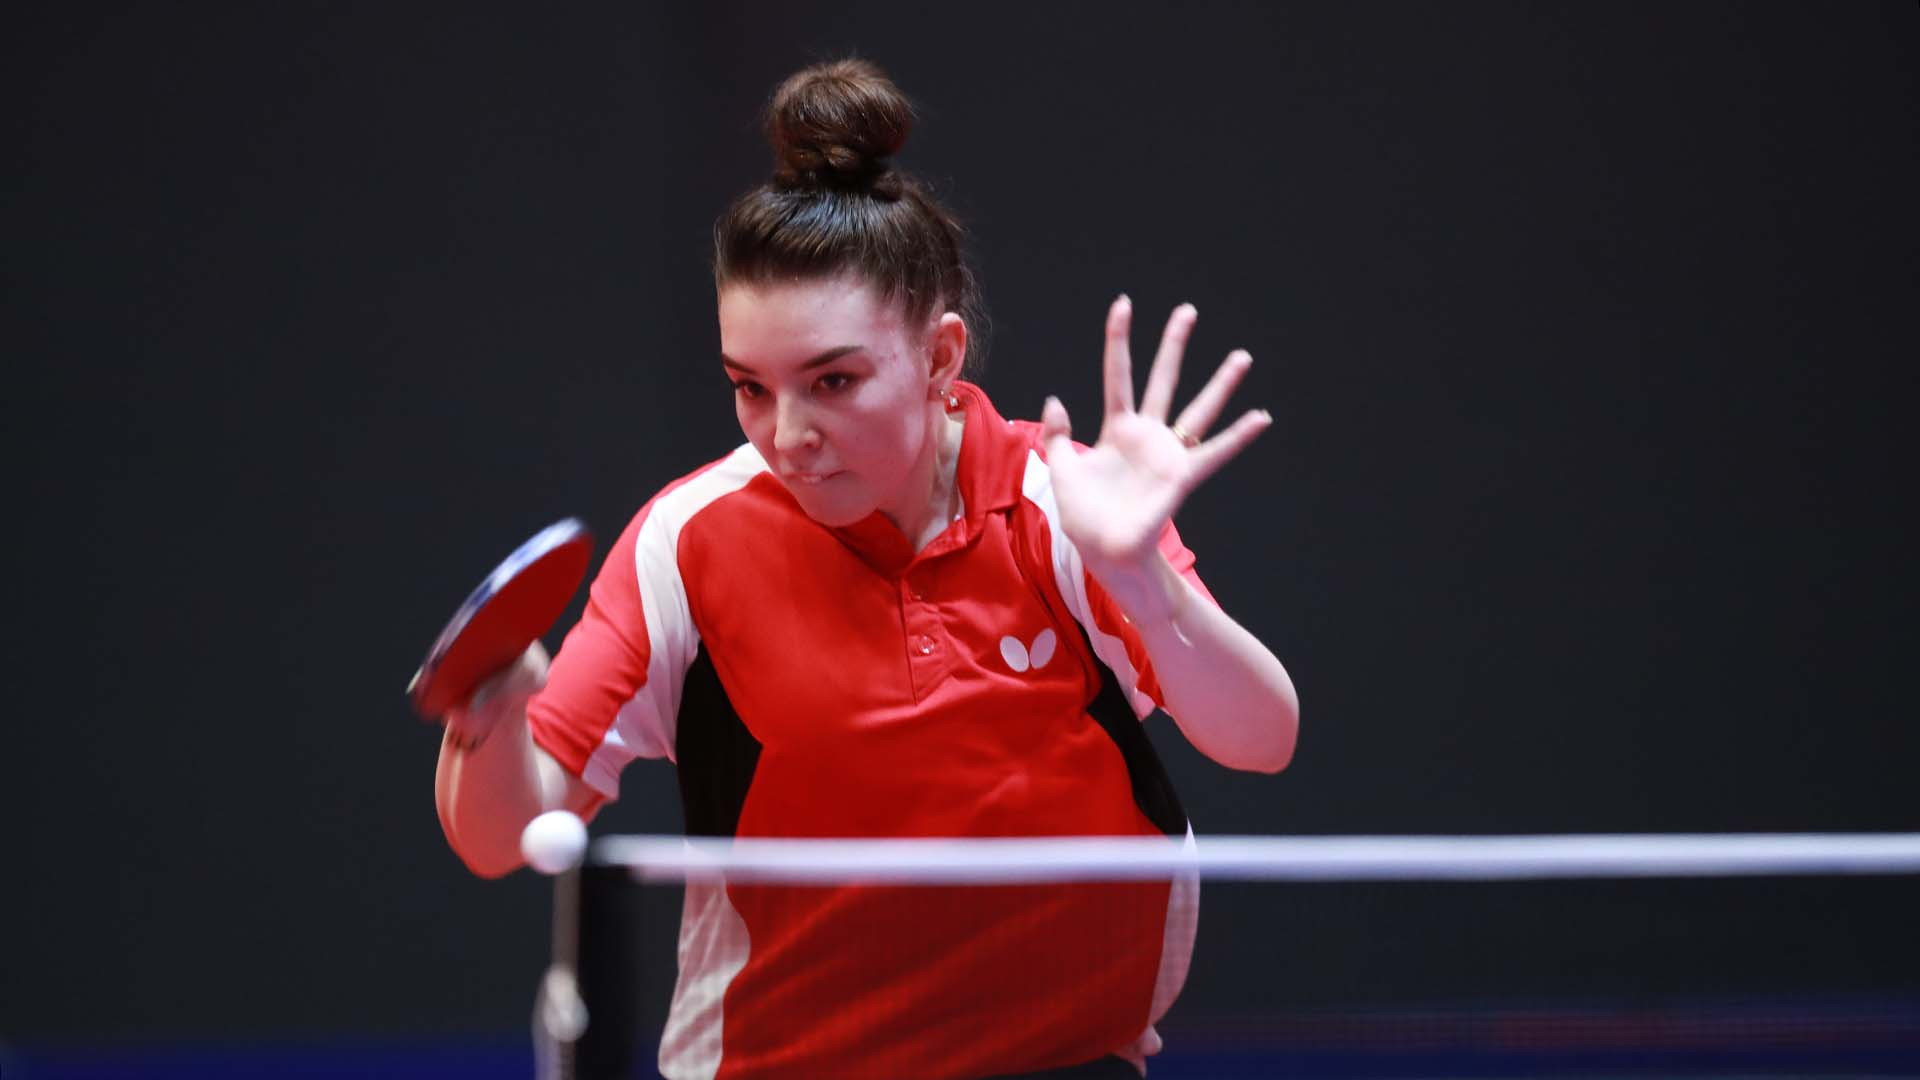 China and Japan through to boys' and girls' team finals at ITTF World Junior Table Tennis Championships